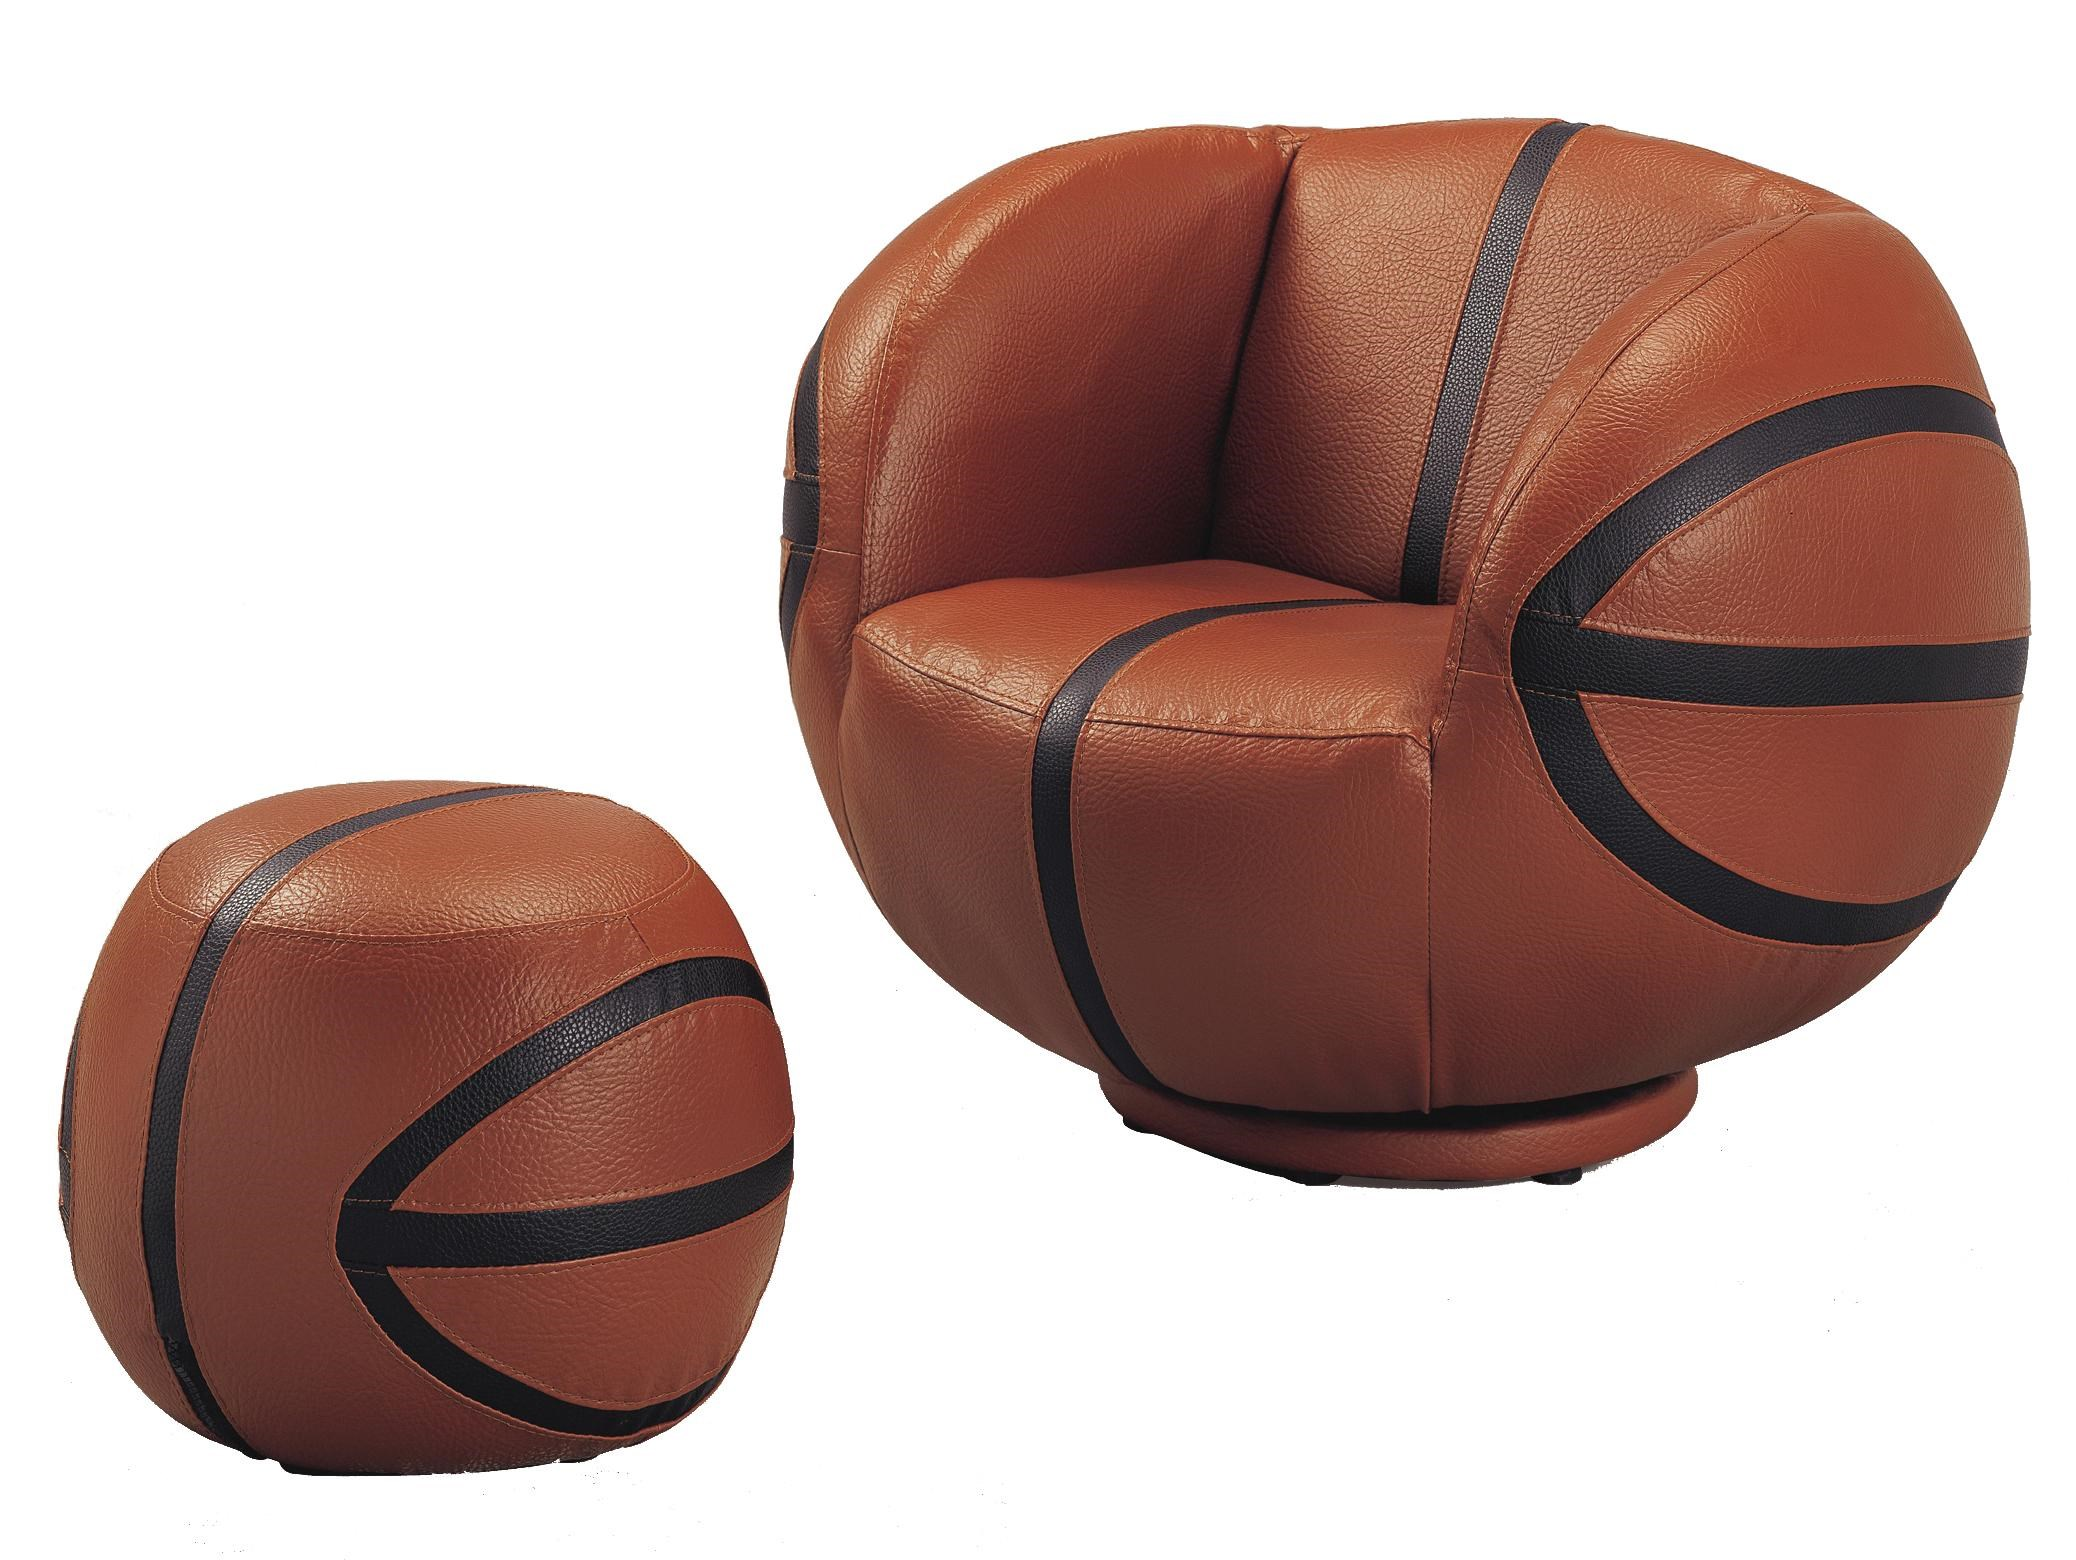 kids chair with ottoman office casters lowes crown mark sport chairs 7002 basketball swivel household furniture